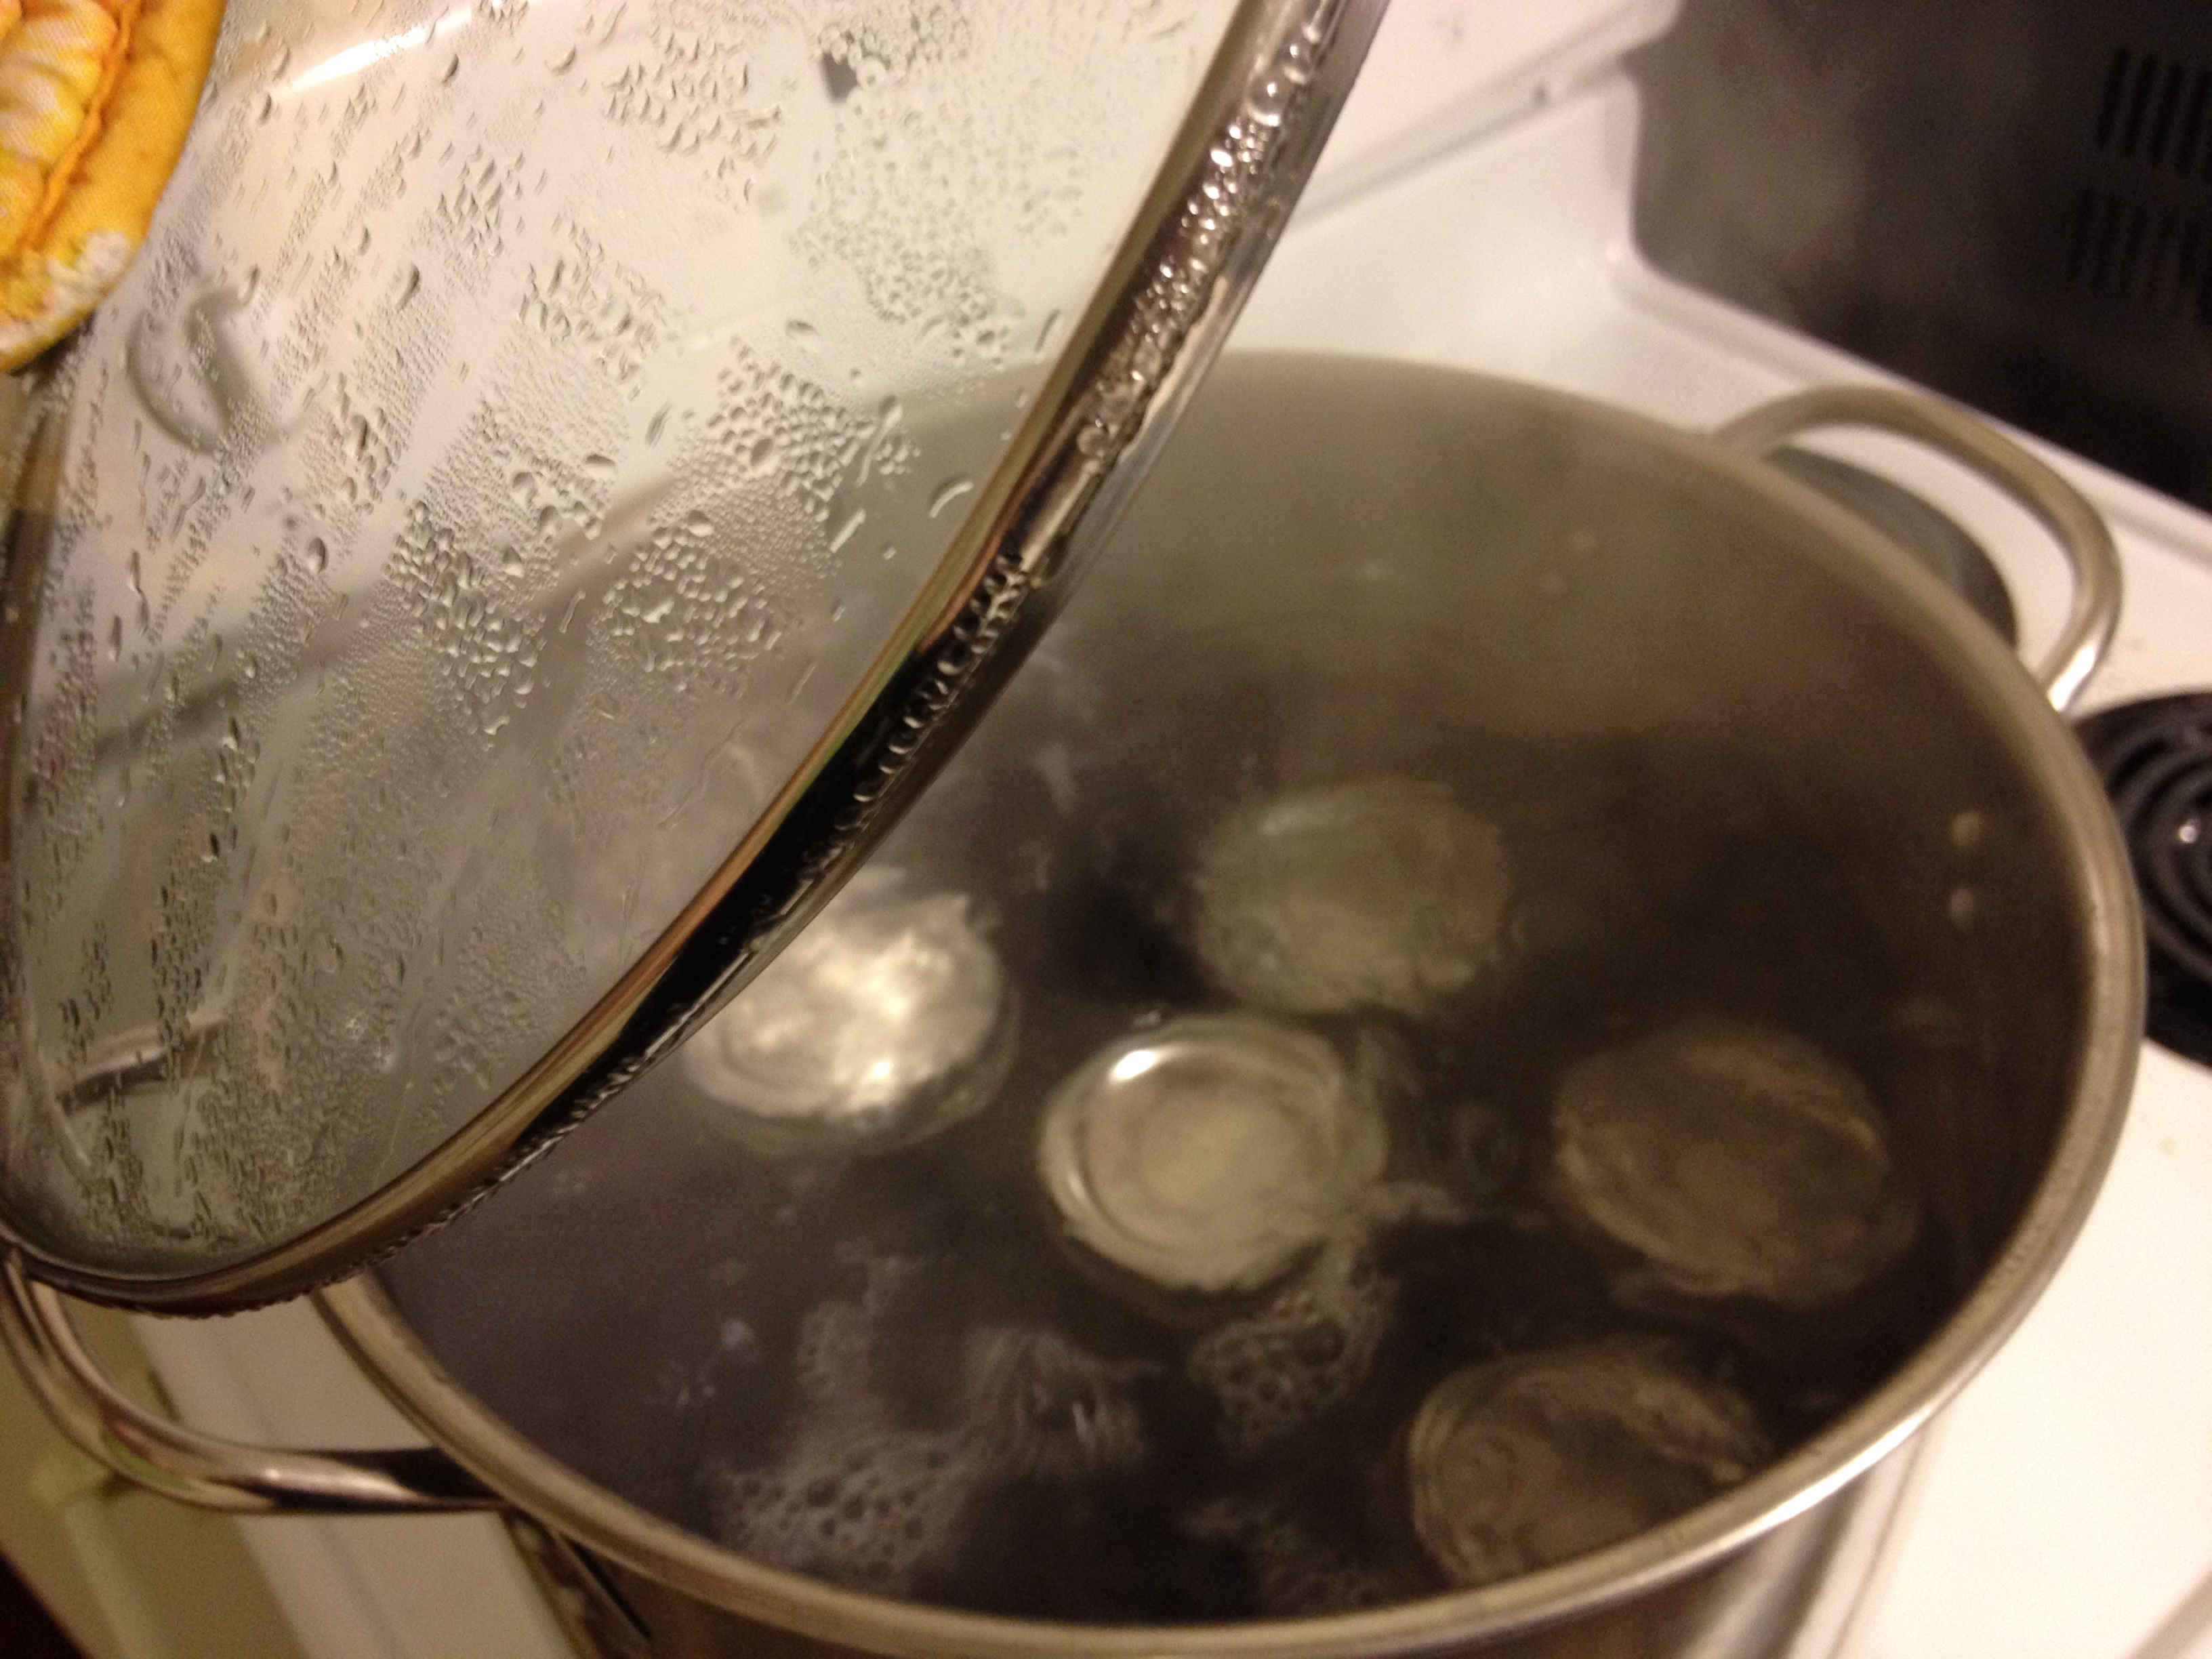 How To… Do Water Bath Canning